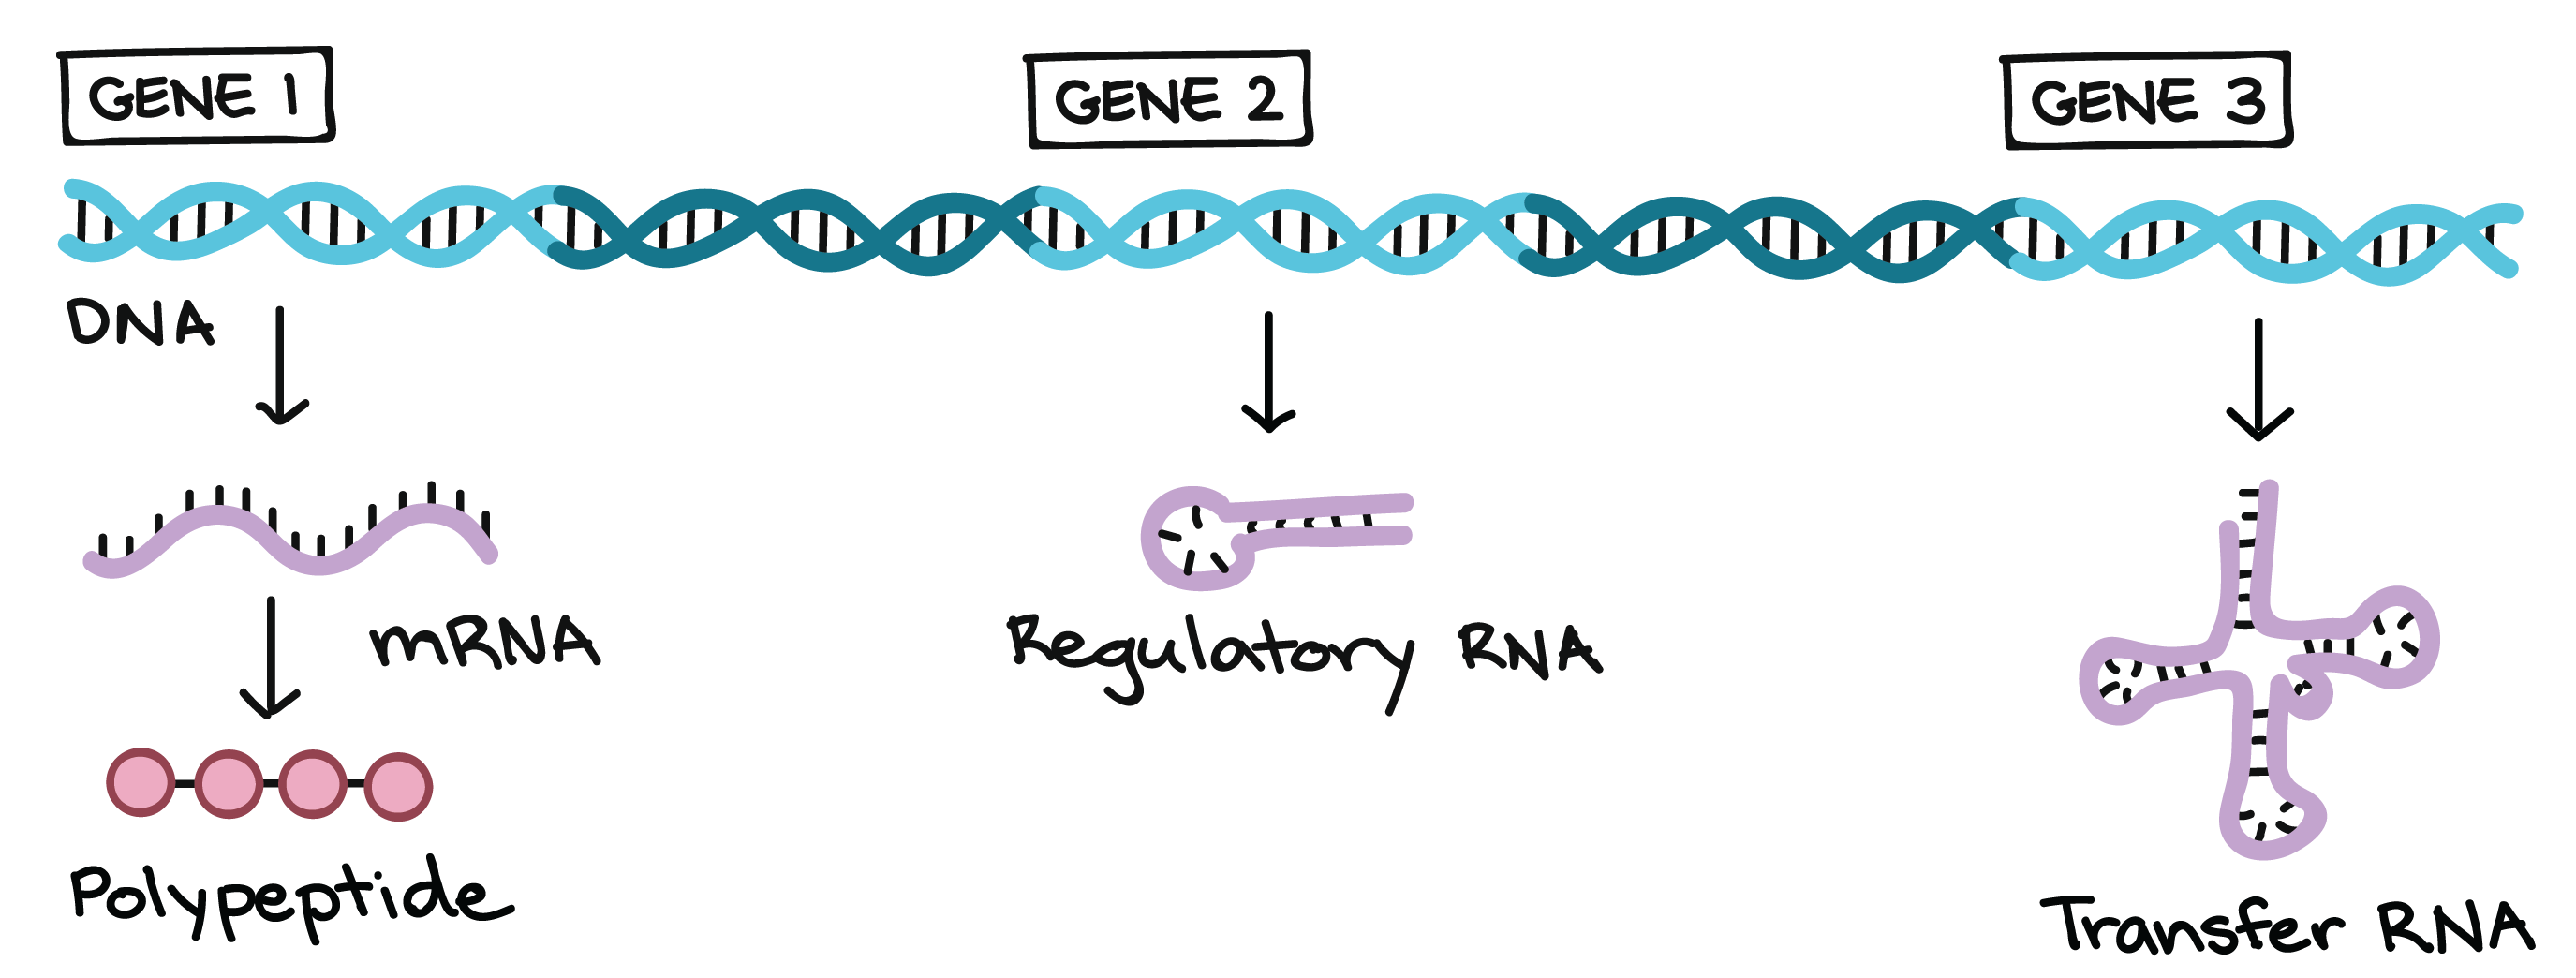 how is information to make proteins passed on through generations